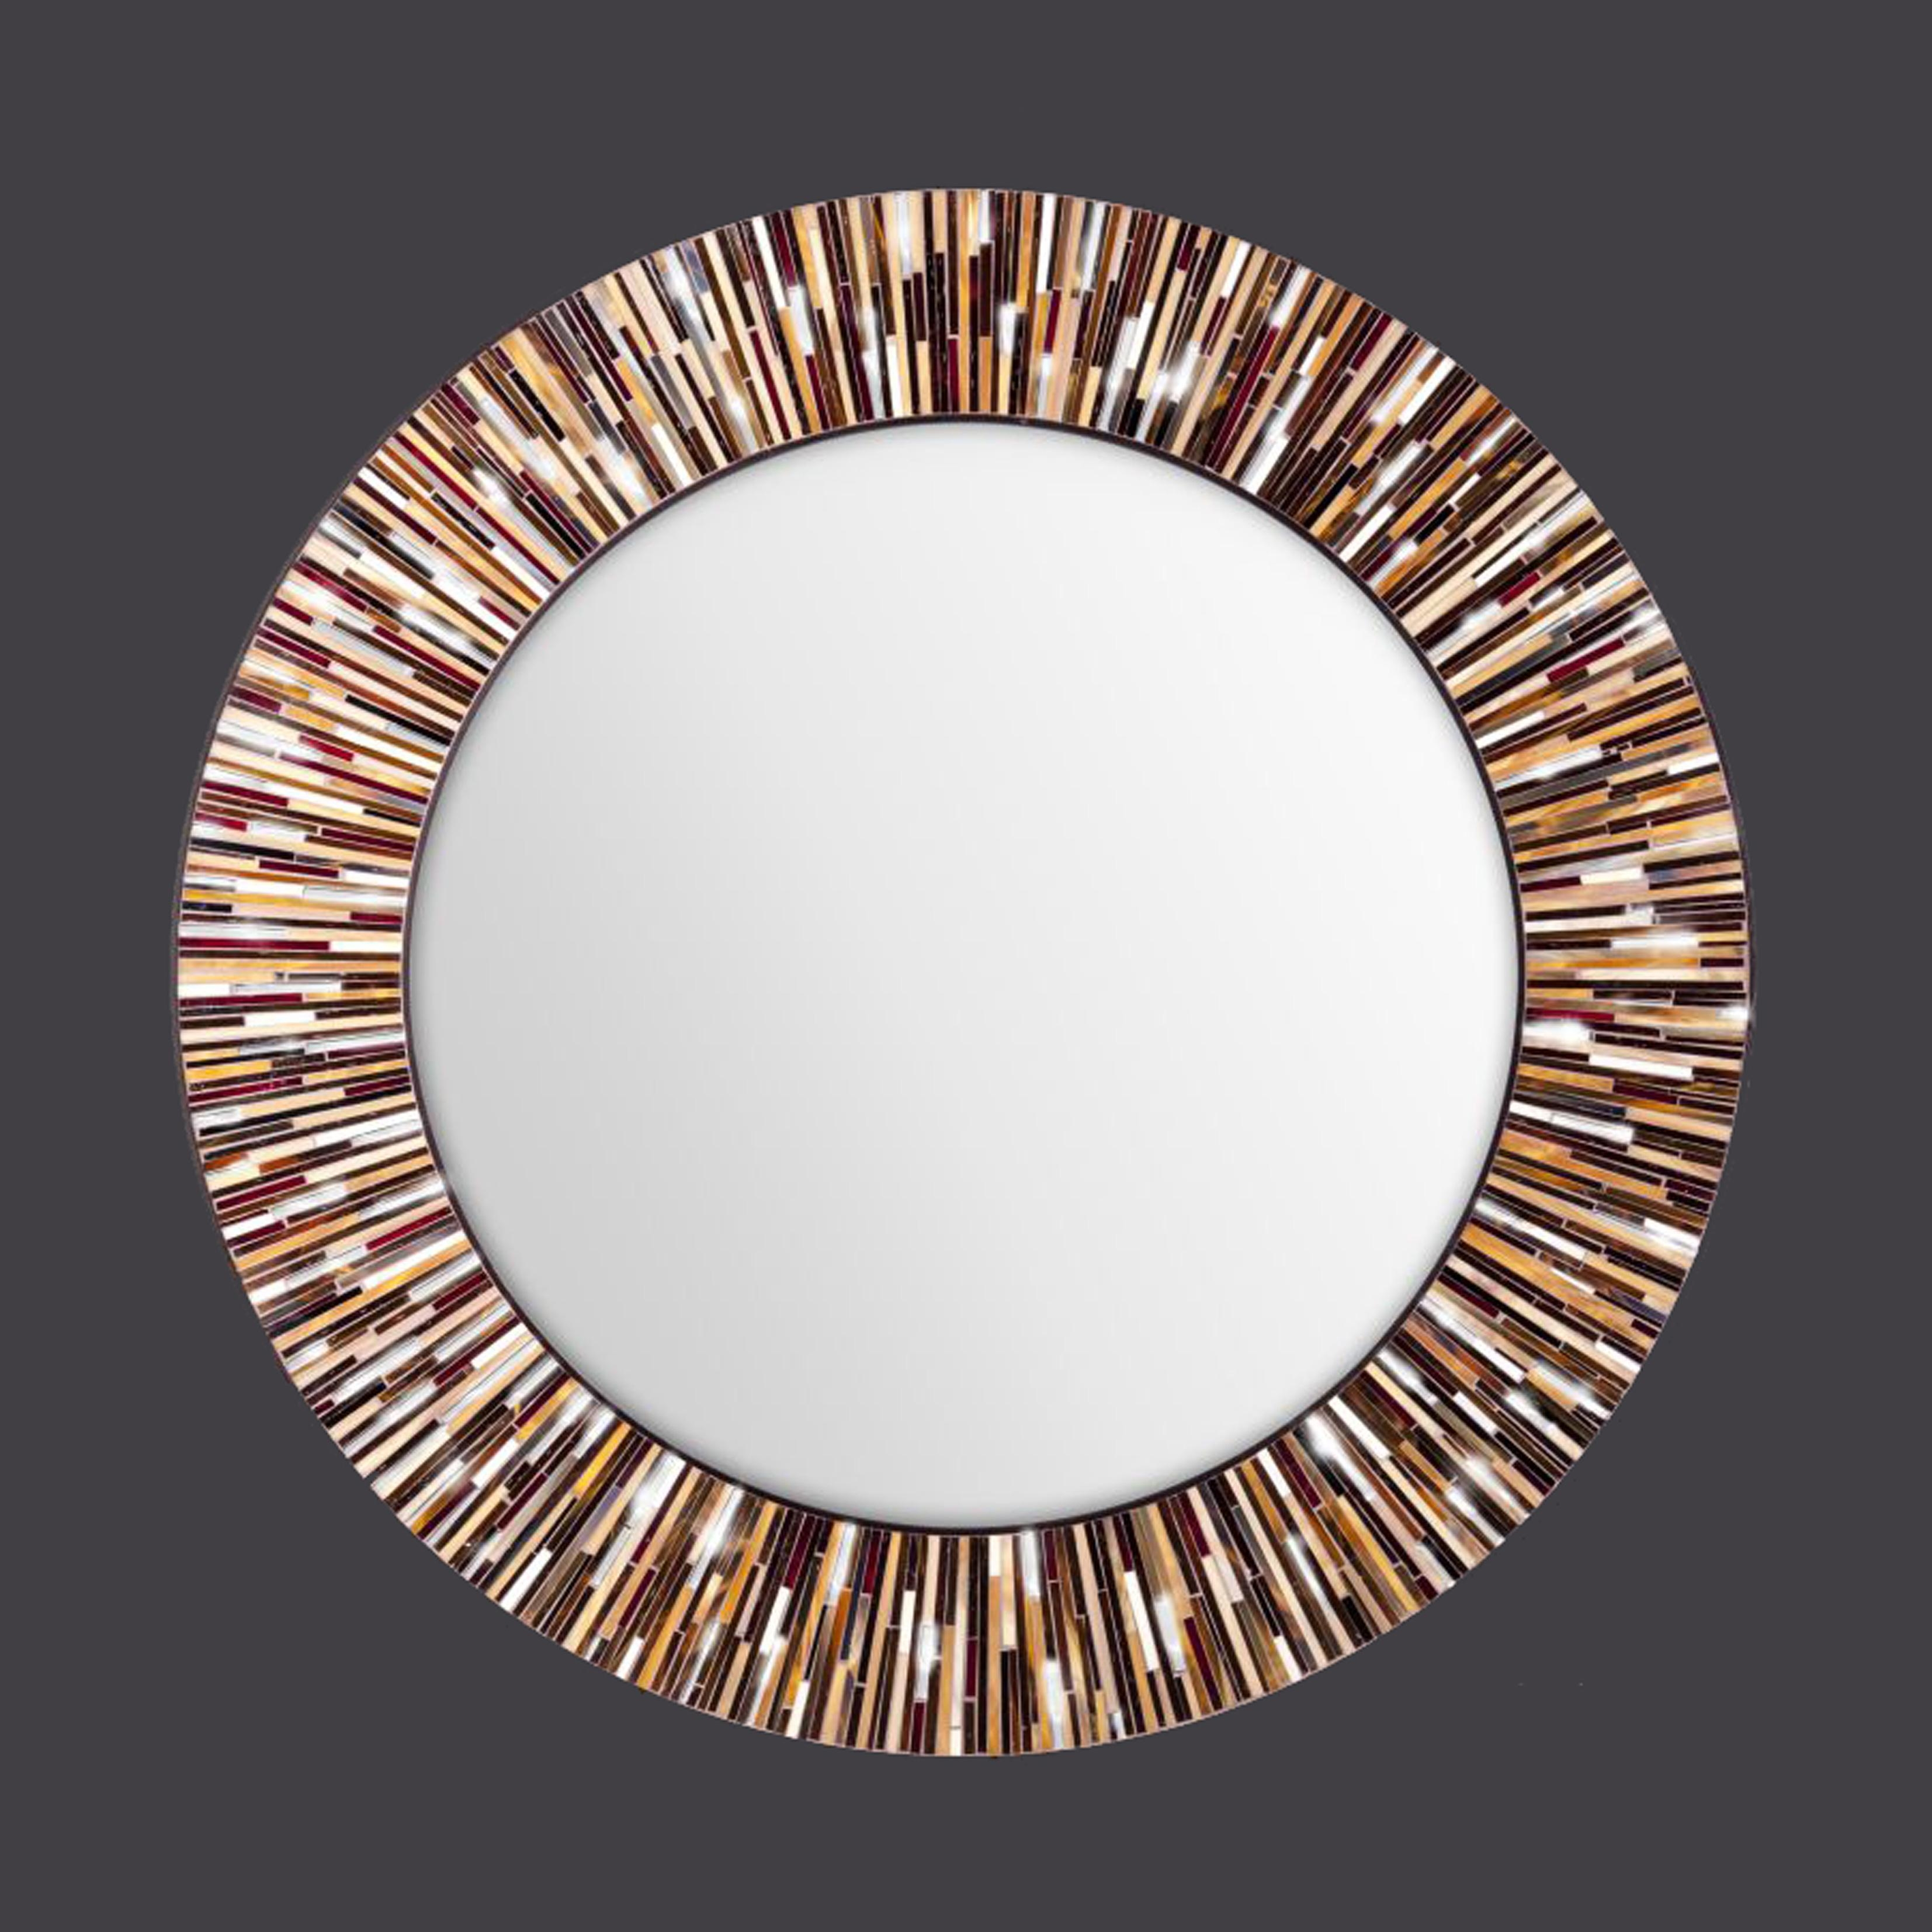 Mosaic Mirrors For Sale 81 Cute Interior And Fair Trade Round Throughout Round Mirror For Sale (View 13 of 20)